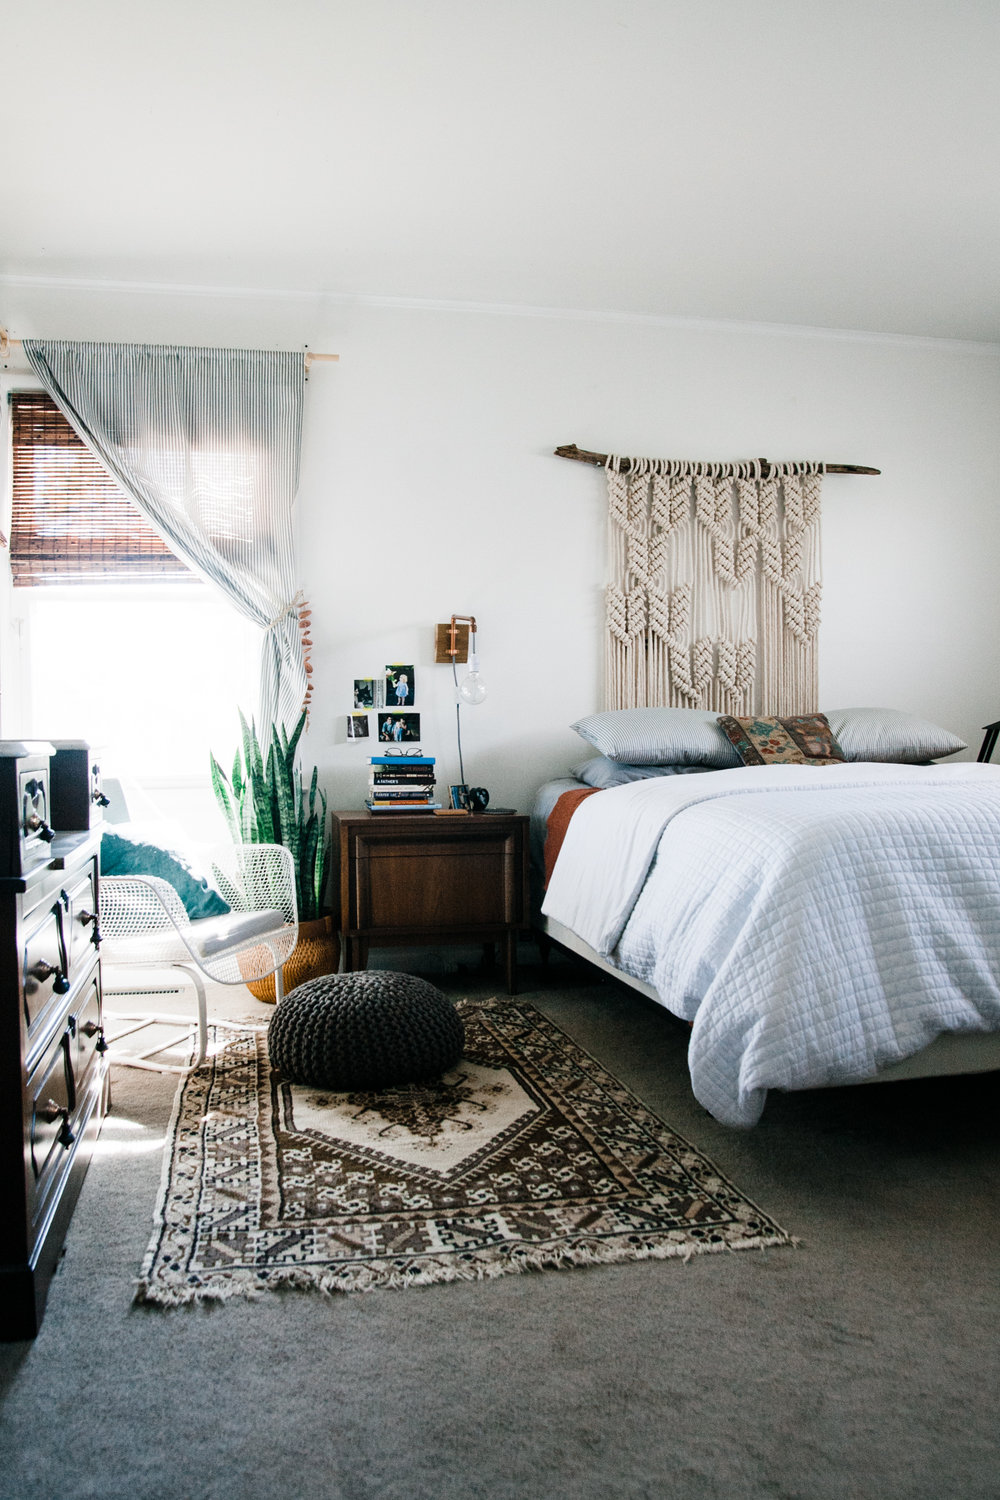 Palmer_bedroom_ BLOG-13.jpg